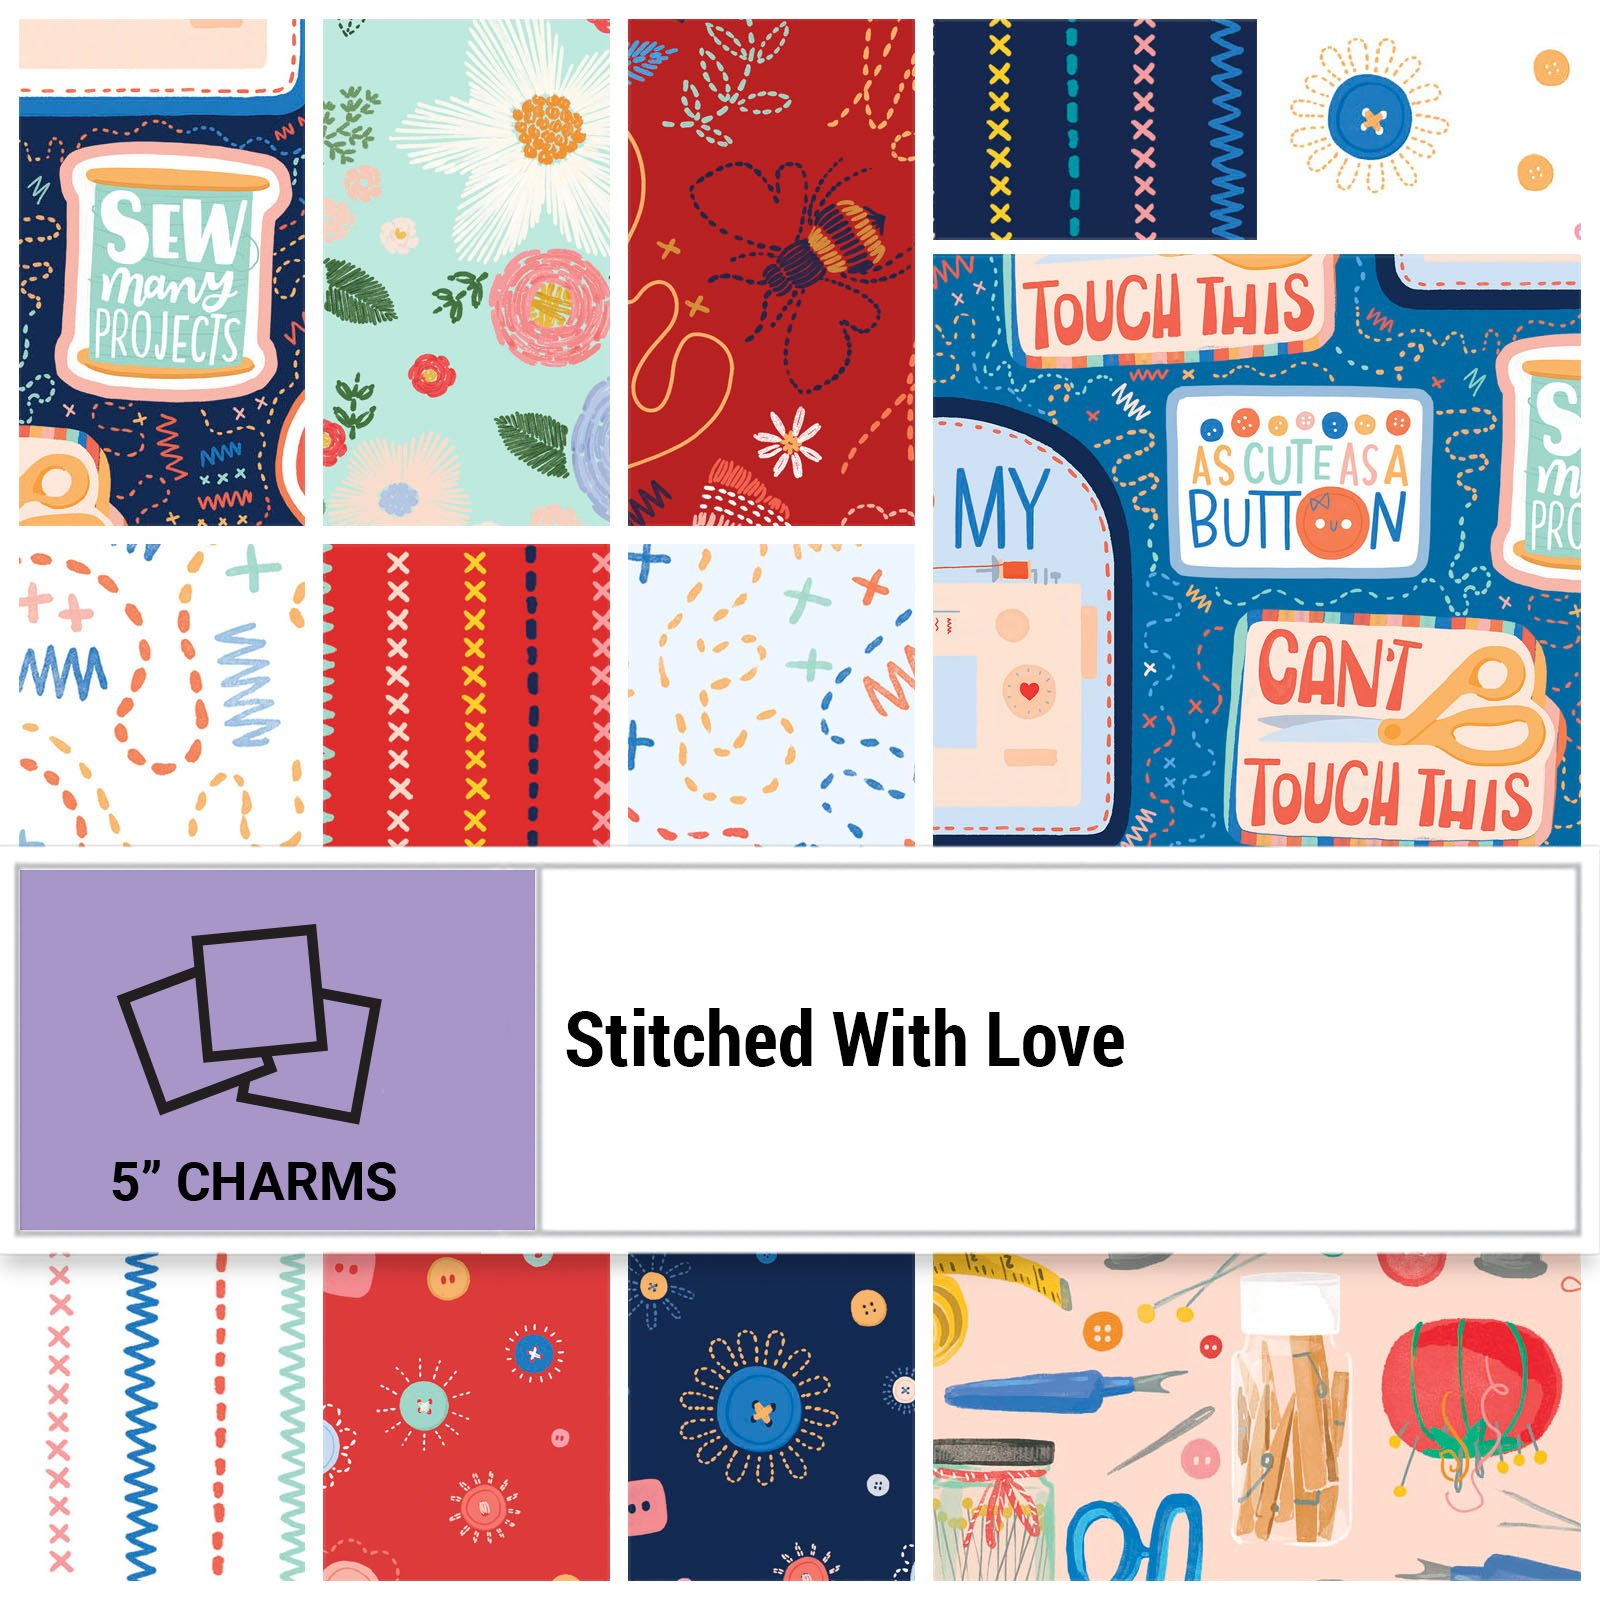 SWLO-005X5 - STITCHED WITH LOVE 5 x 5 SQUARES 42PCS - ARRIVING IN MARCH 2022